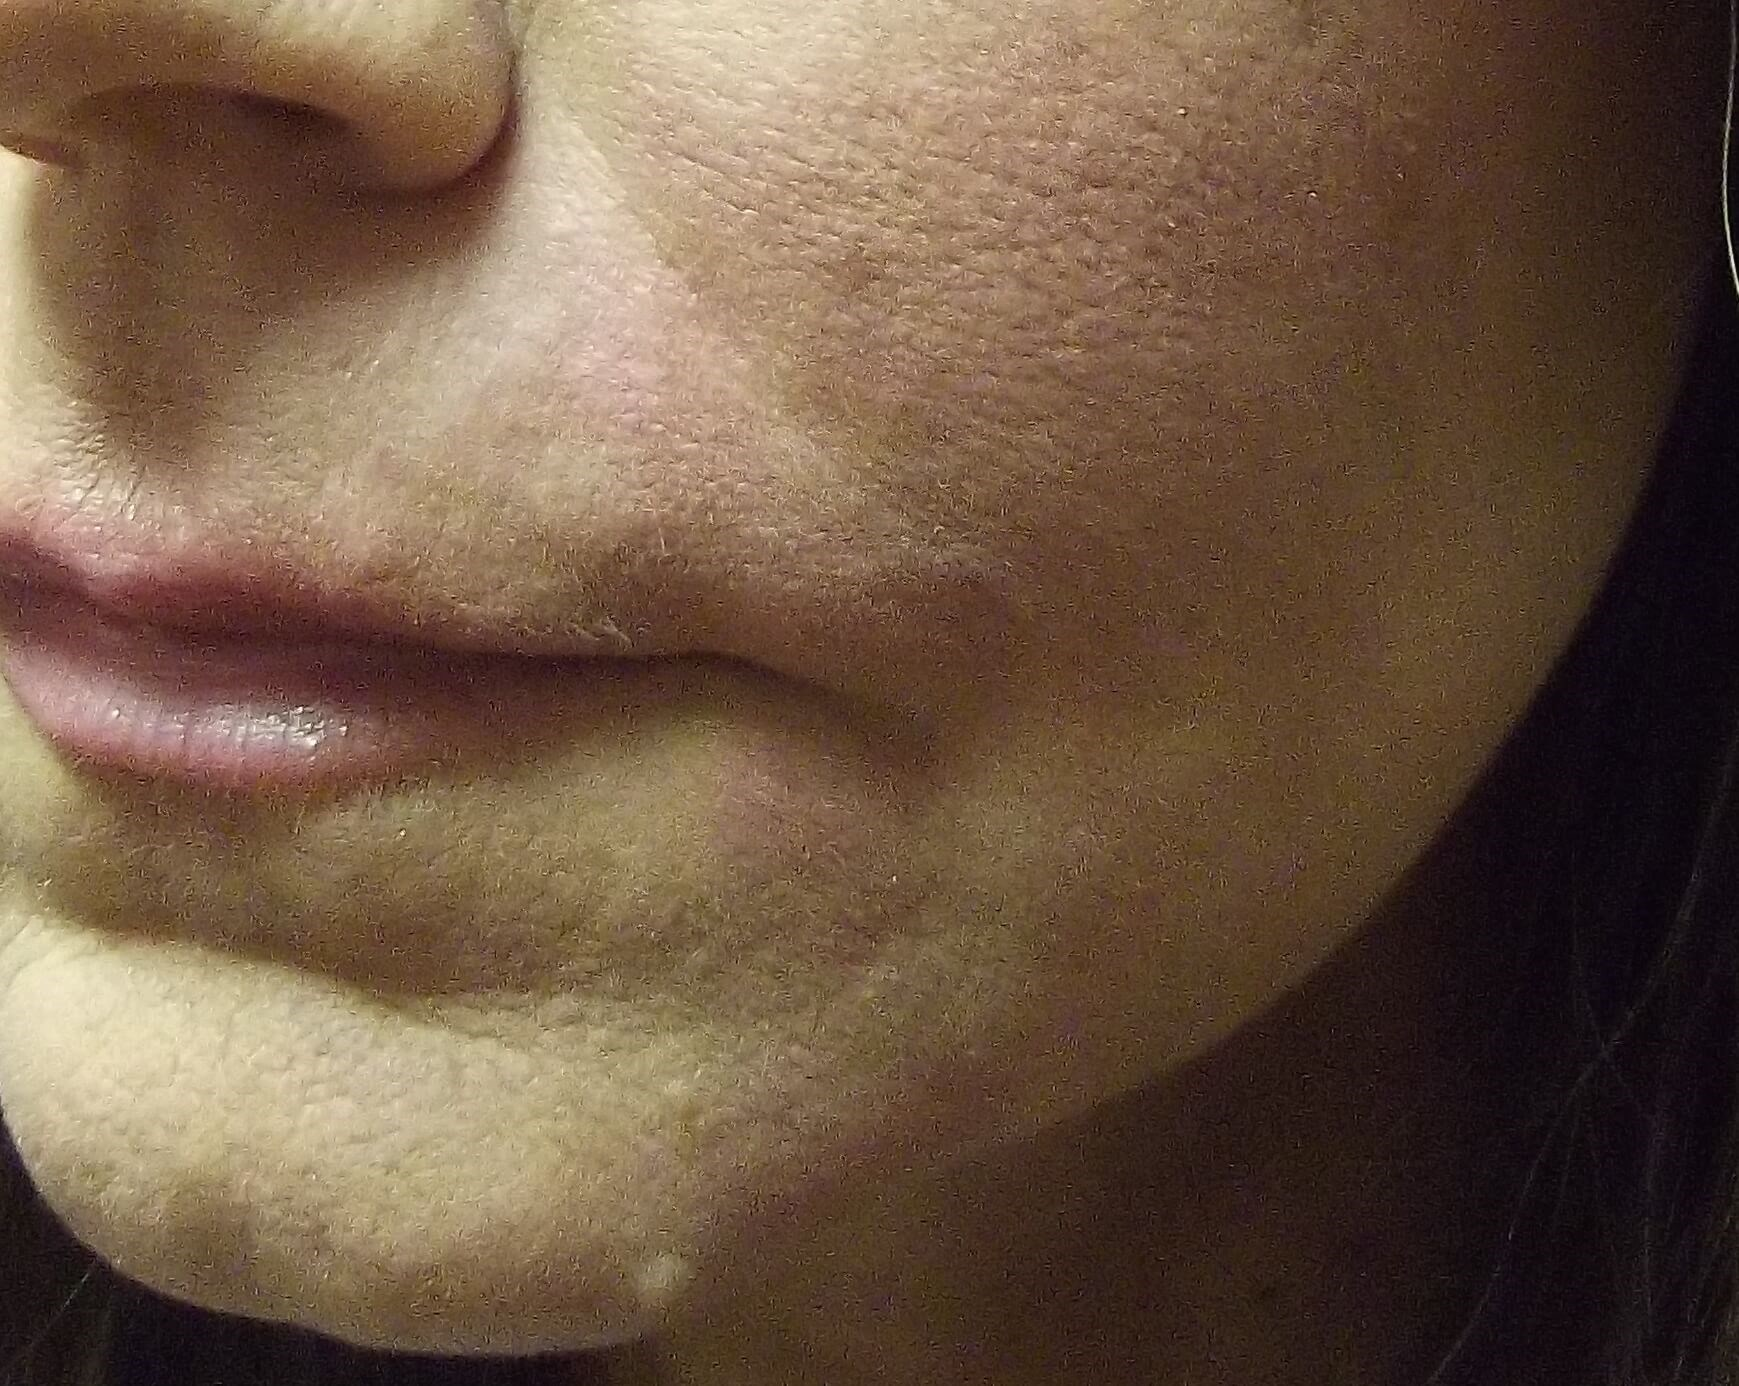 Juvederm Lifts Sagging Skin After Juvederm Injection